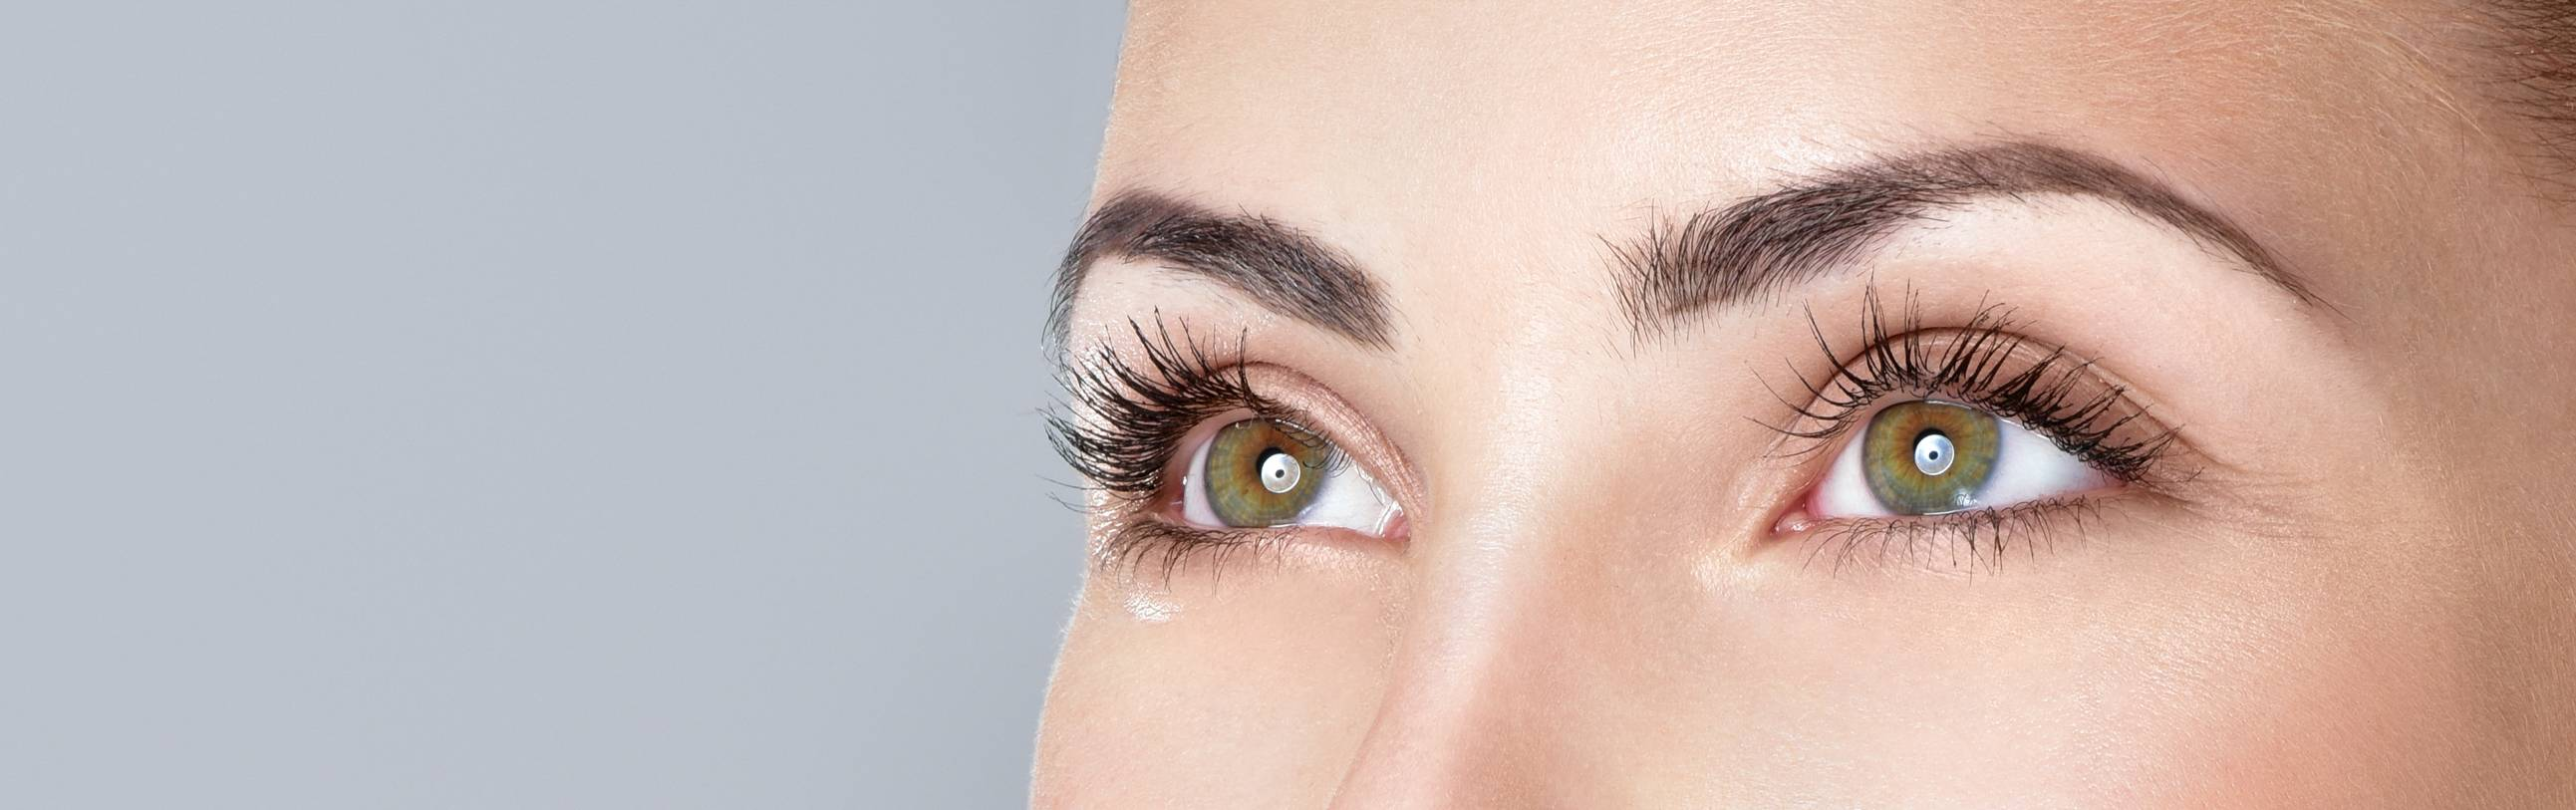 Eye Care Augenbehandlung in Gauting